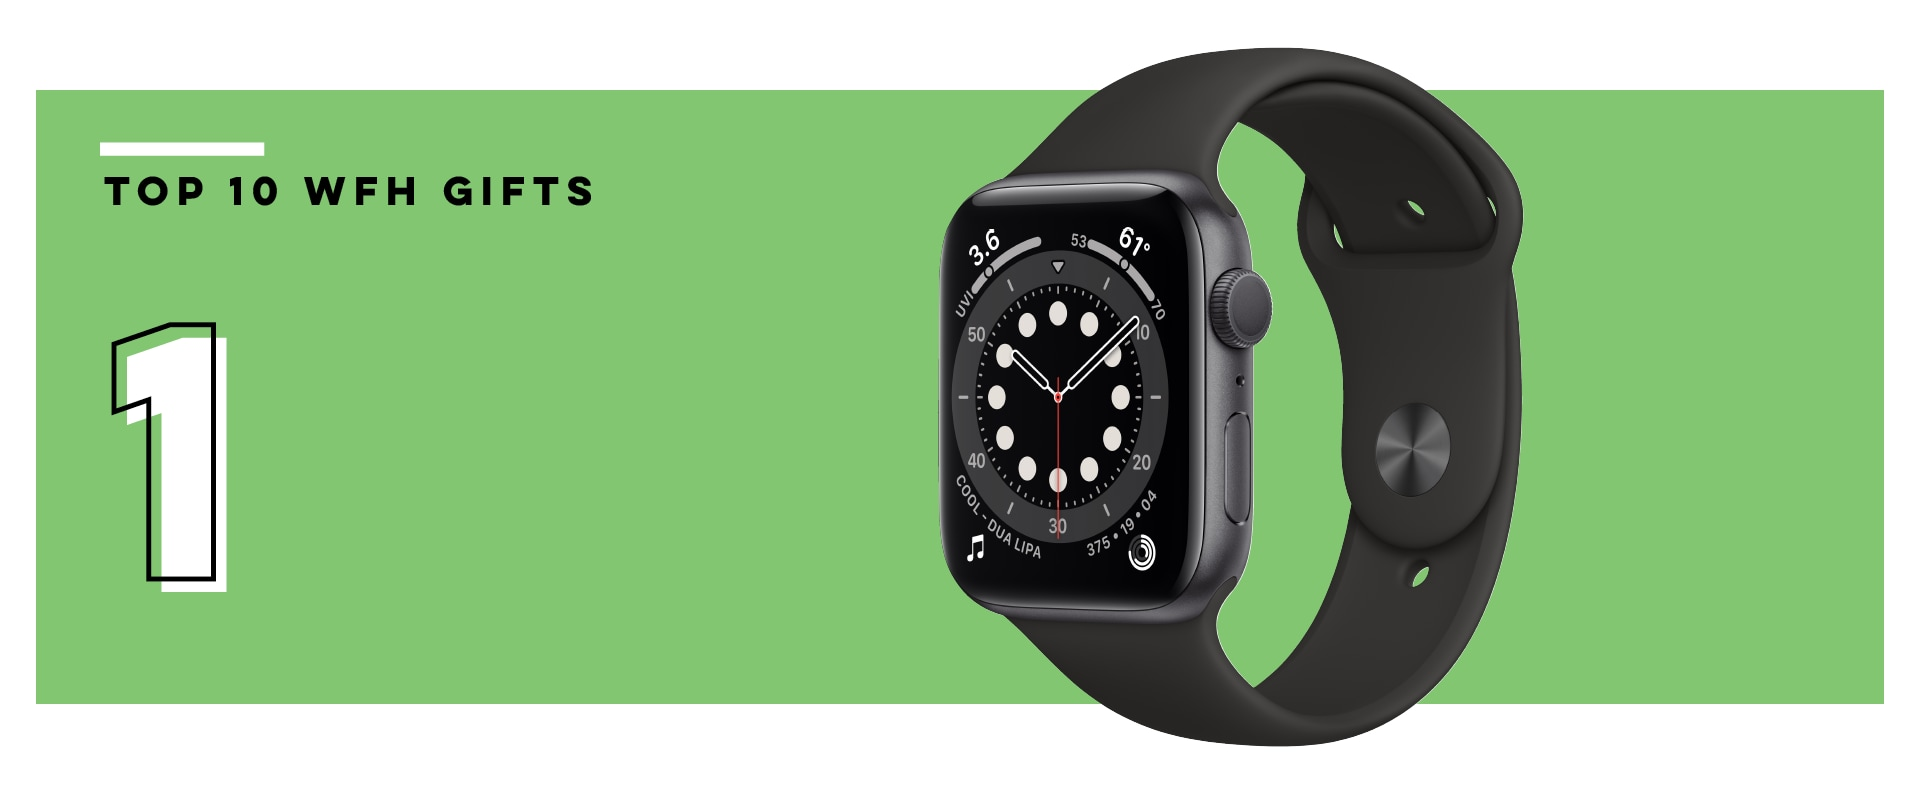 Work from Home 1: Apple Watch